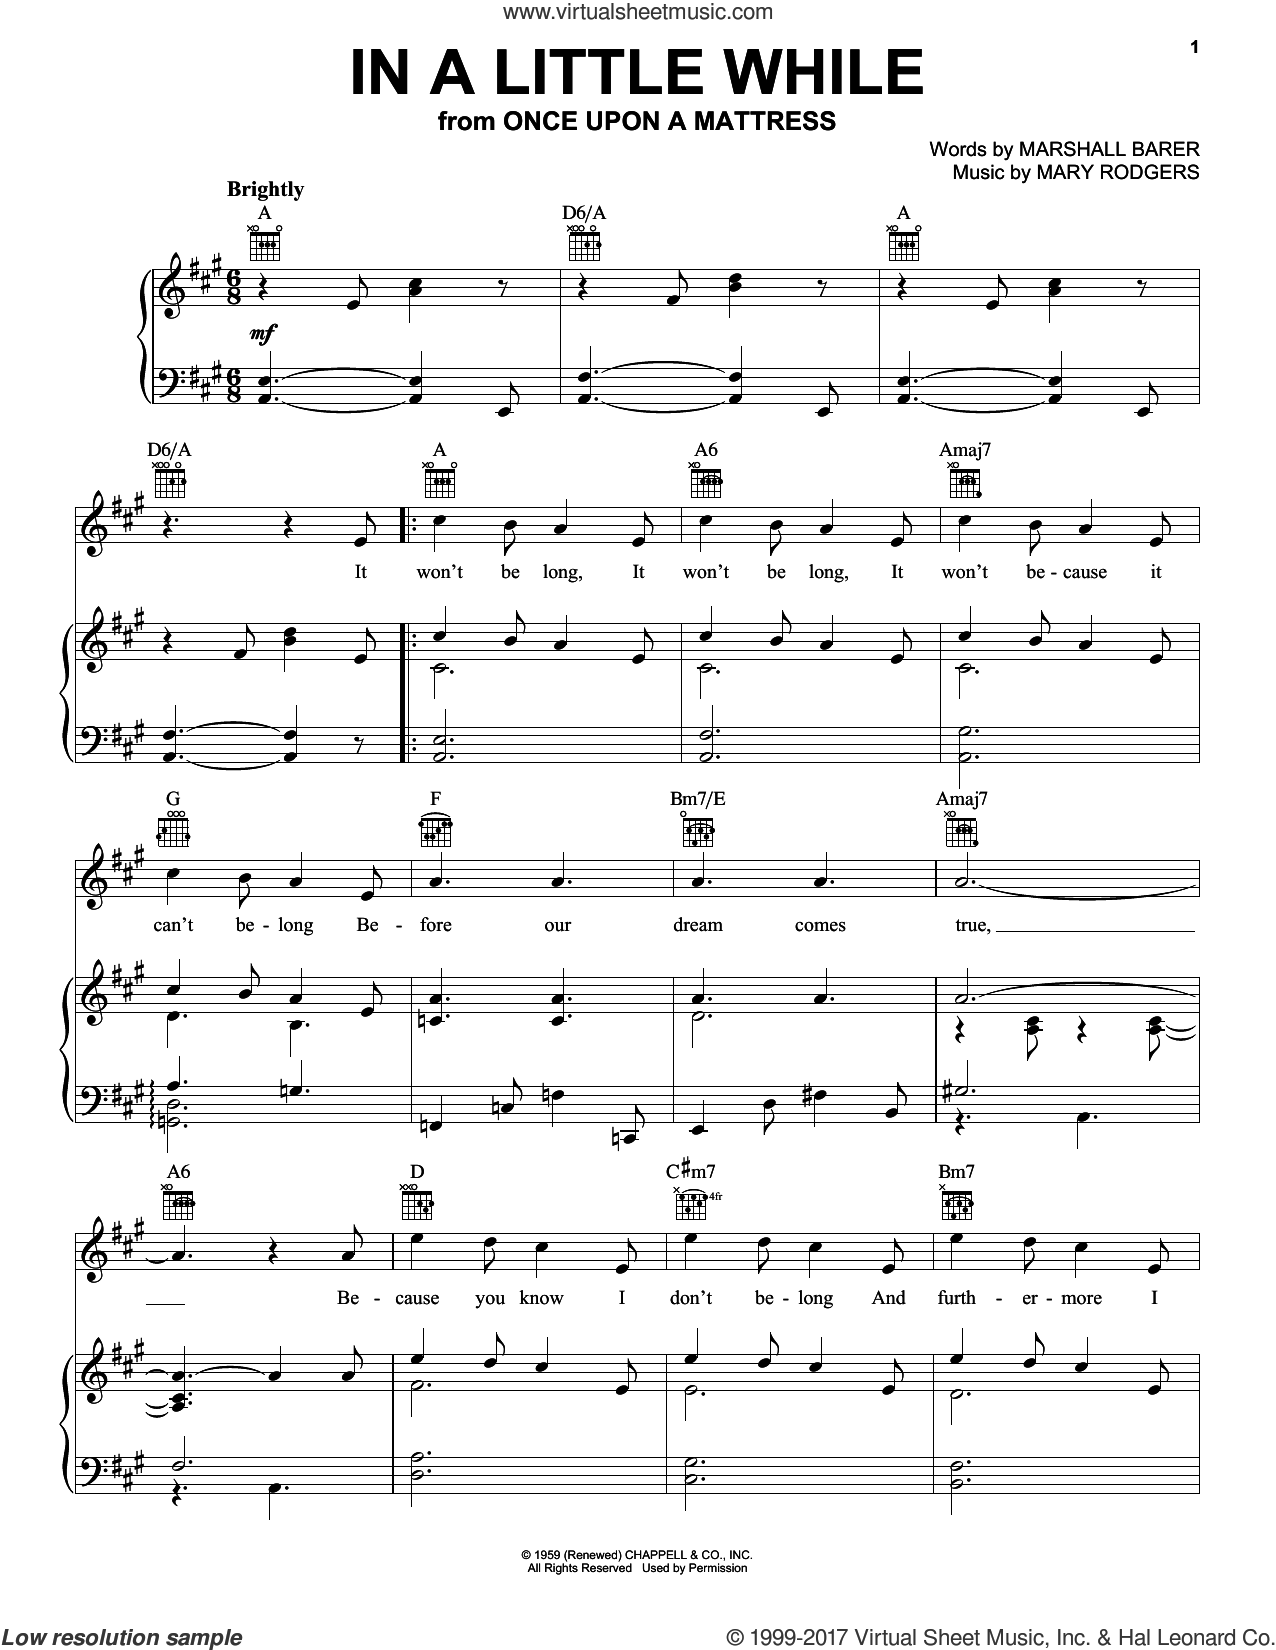 In A Little While sheet music for voice, piano or guitar by Rodgers & Barer, Marshall Barer and Mary Rodgers, intermediate skill level